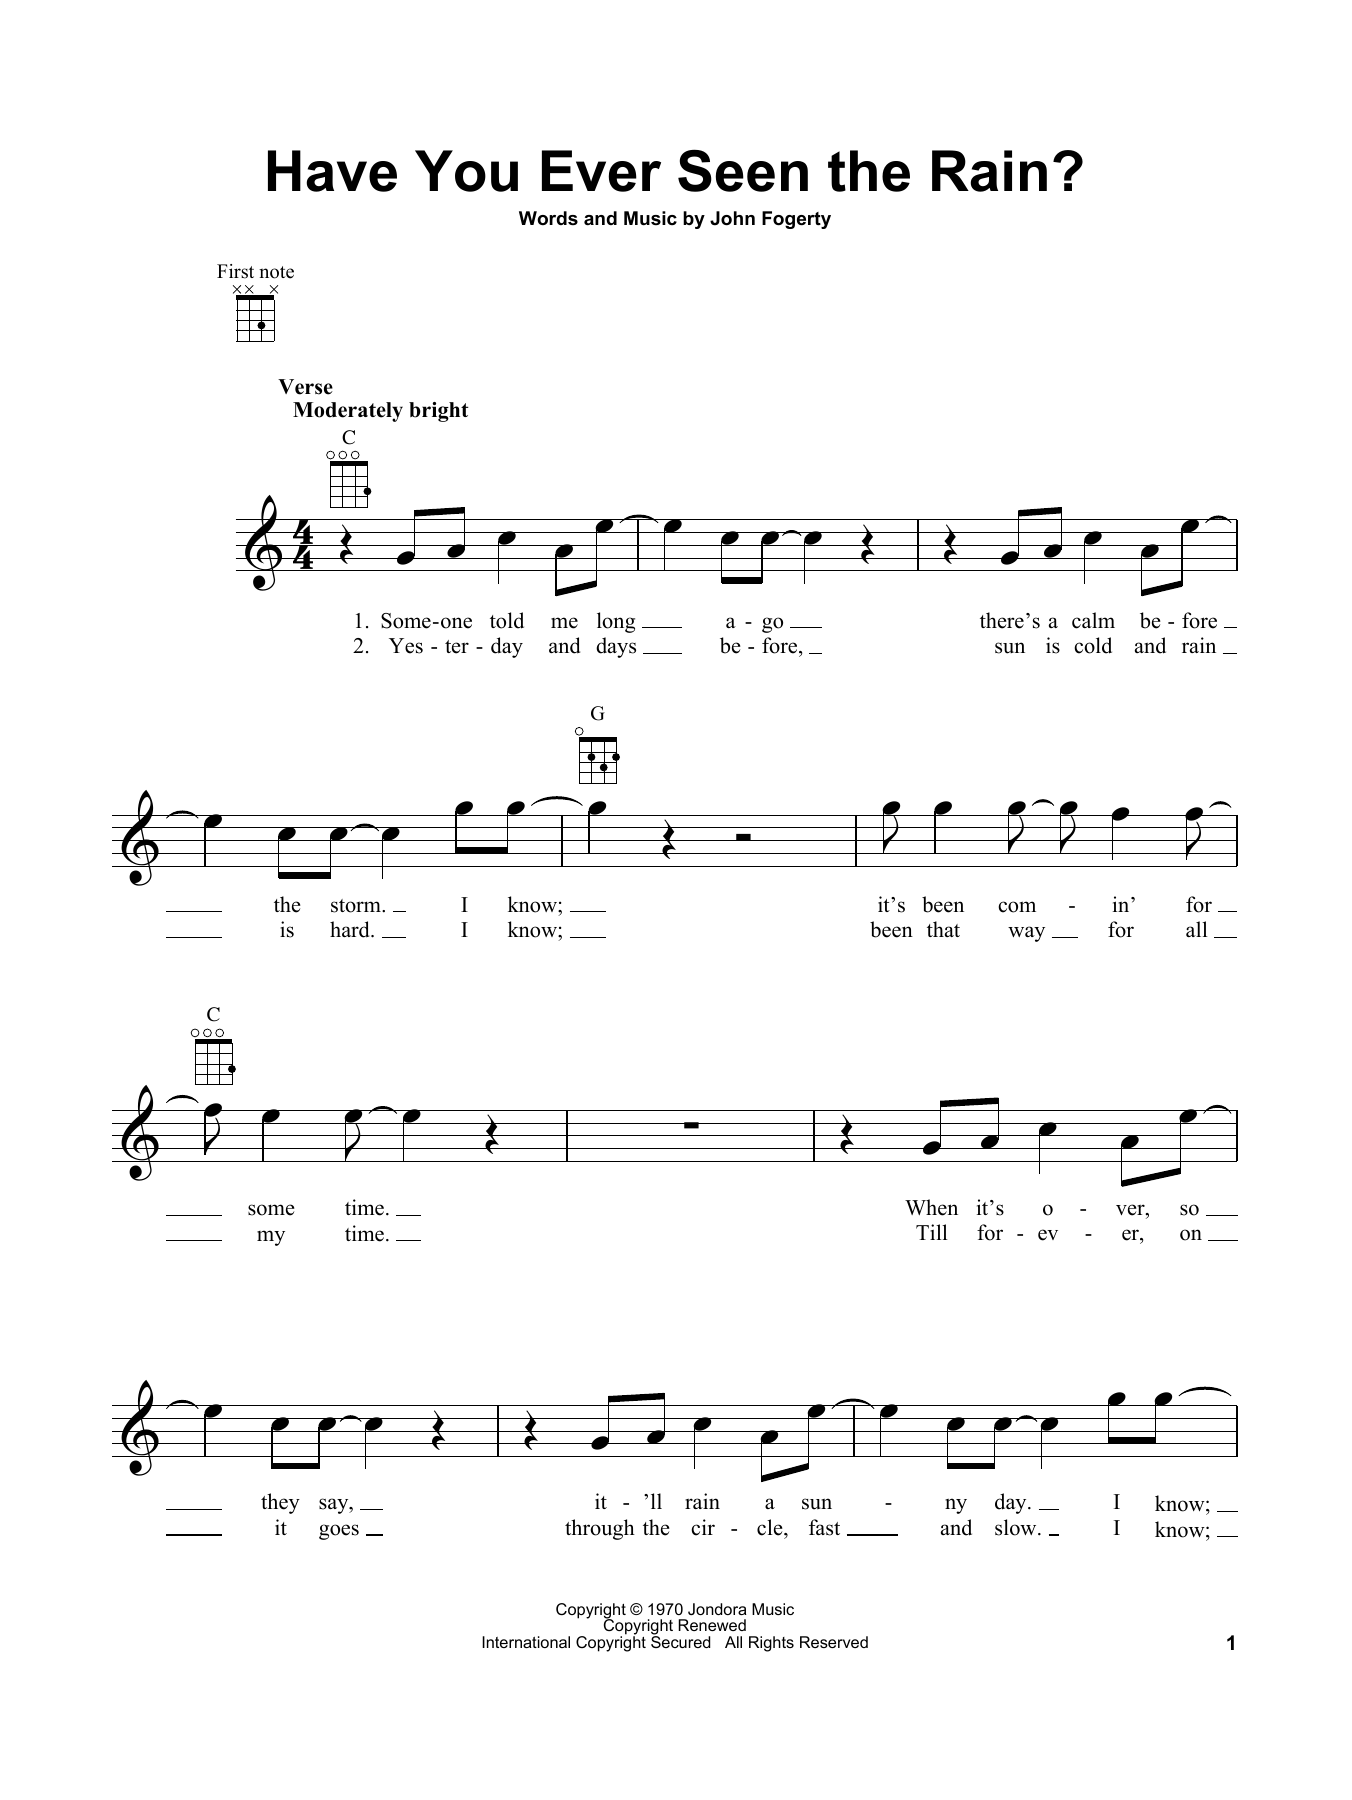 Have You Ever Seen The Rain? Sheet Music